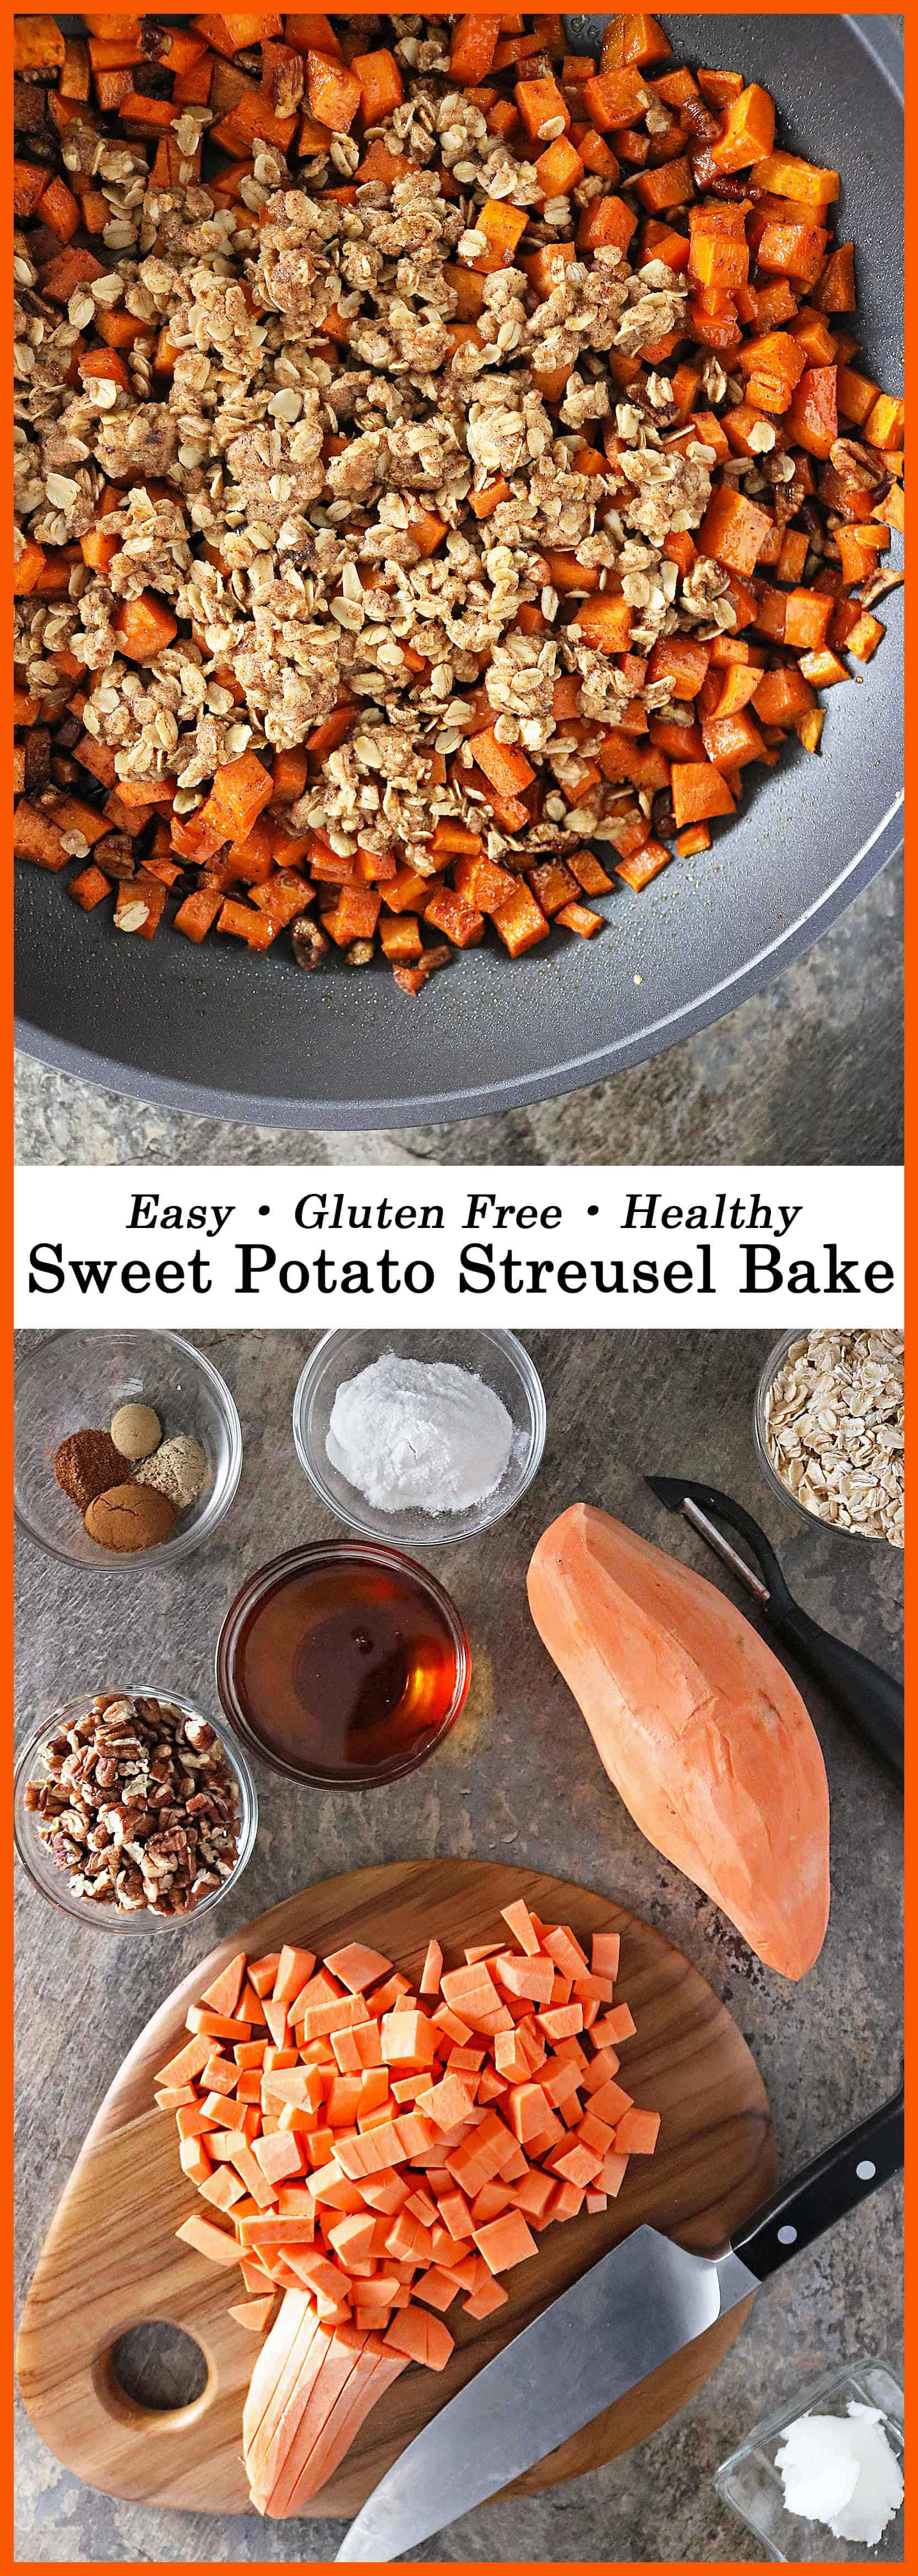 This Sweet Potato Streusel Bake is for you if you are looking for an easy, better-for-you, gluten-free, sweet treat to add to your holiday table. With aromatic, inviting and warm spices like cardamom, cinnamon, and ginger, this is one dish that your family and friends are sure to love.